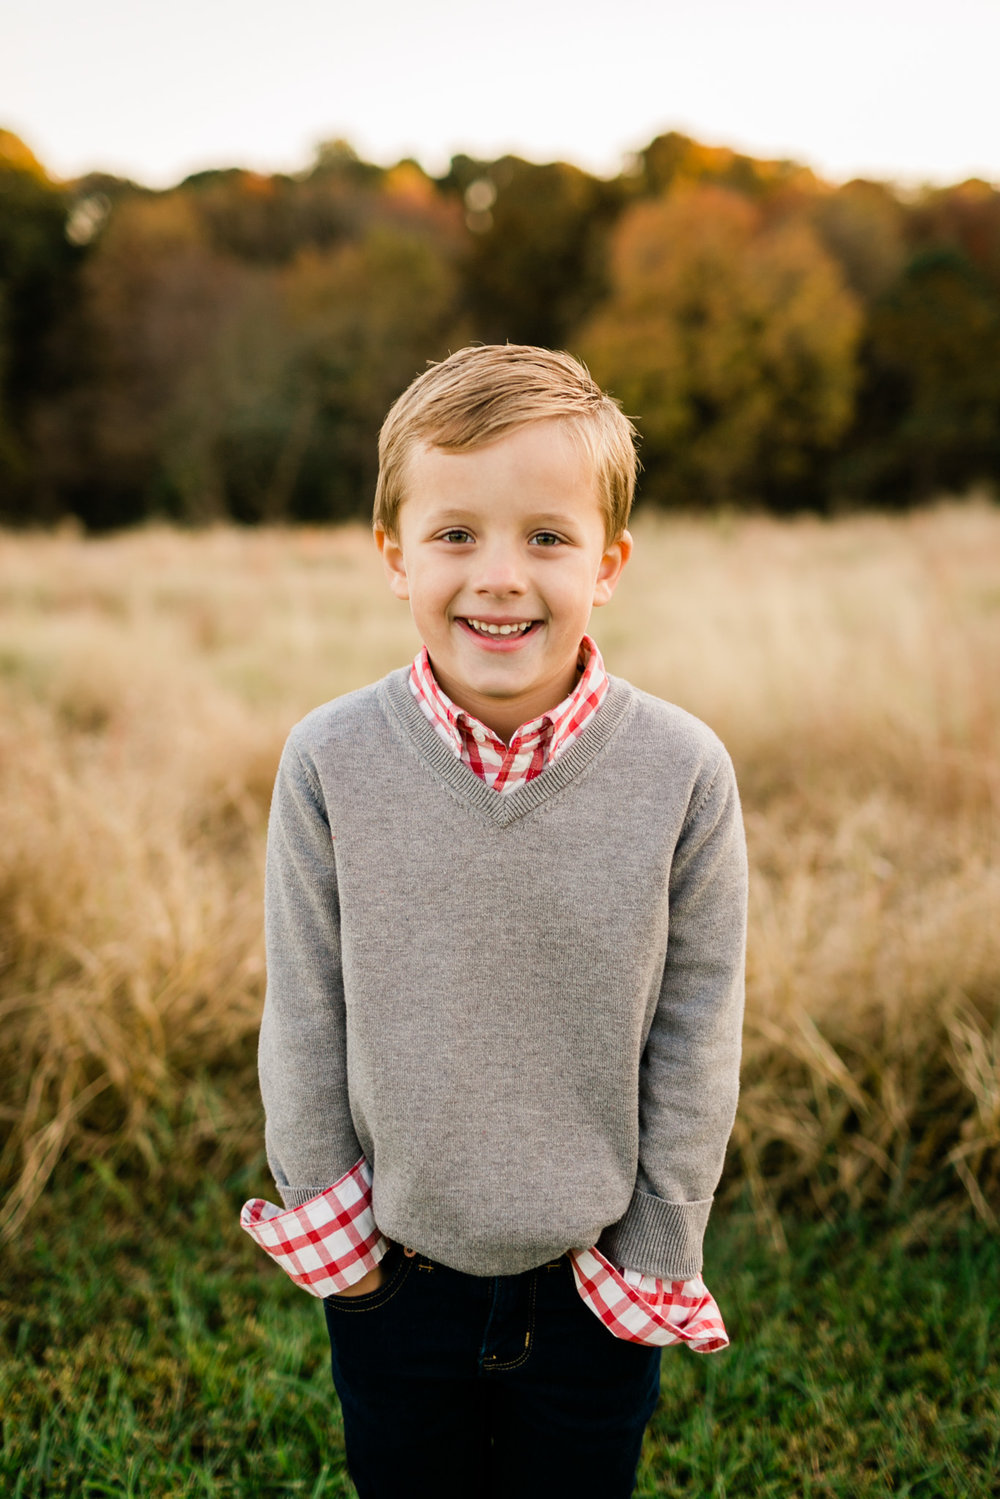 Candid portrait of young boy at NCMA | Raleigh Family Photographer | By G. Lin Photography